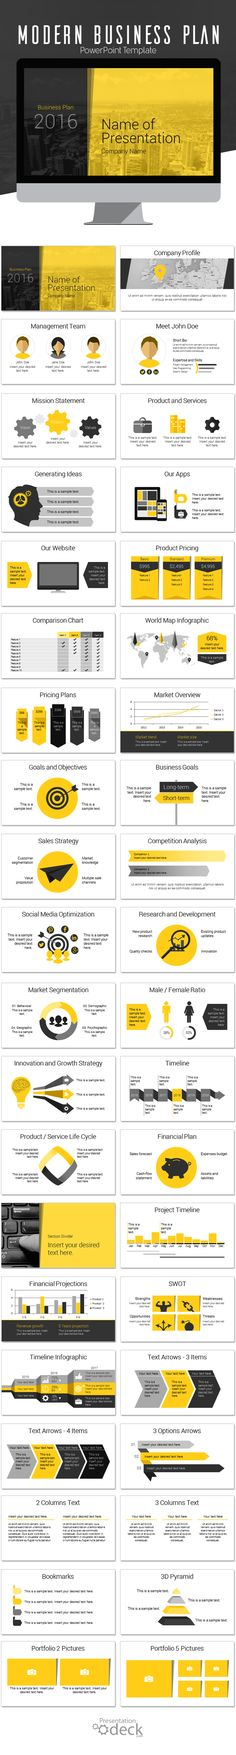 Modern Business Plan PowerPoint Template this theme is perfect for annual reports business plan financial statements etc. Your audience will appreciate the consistent look and feel and design. #powerpoint #business #powerpoint_template